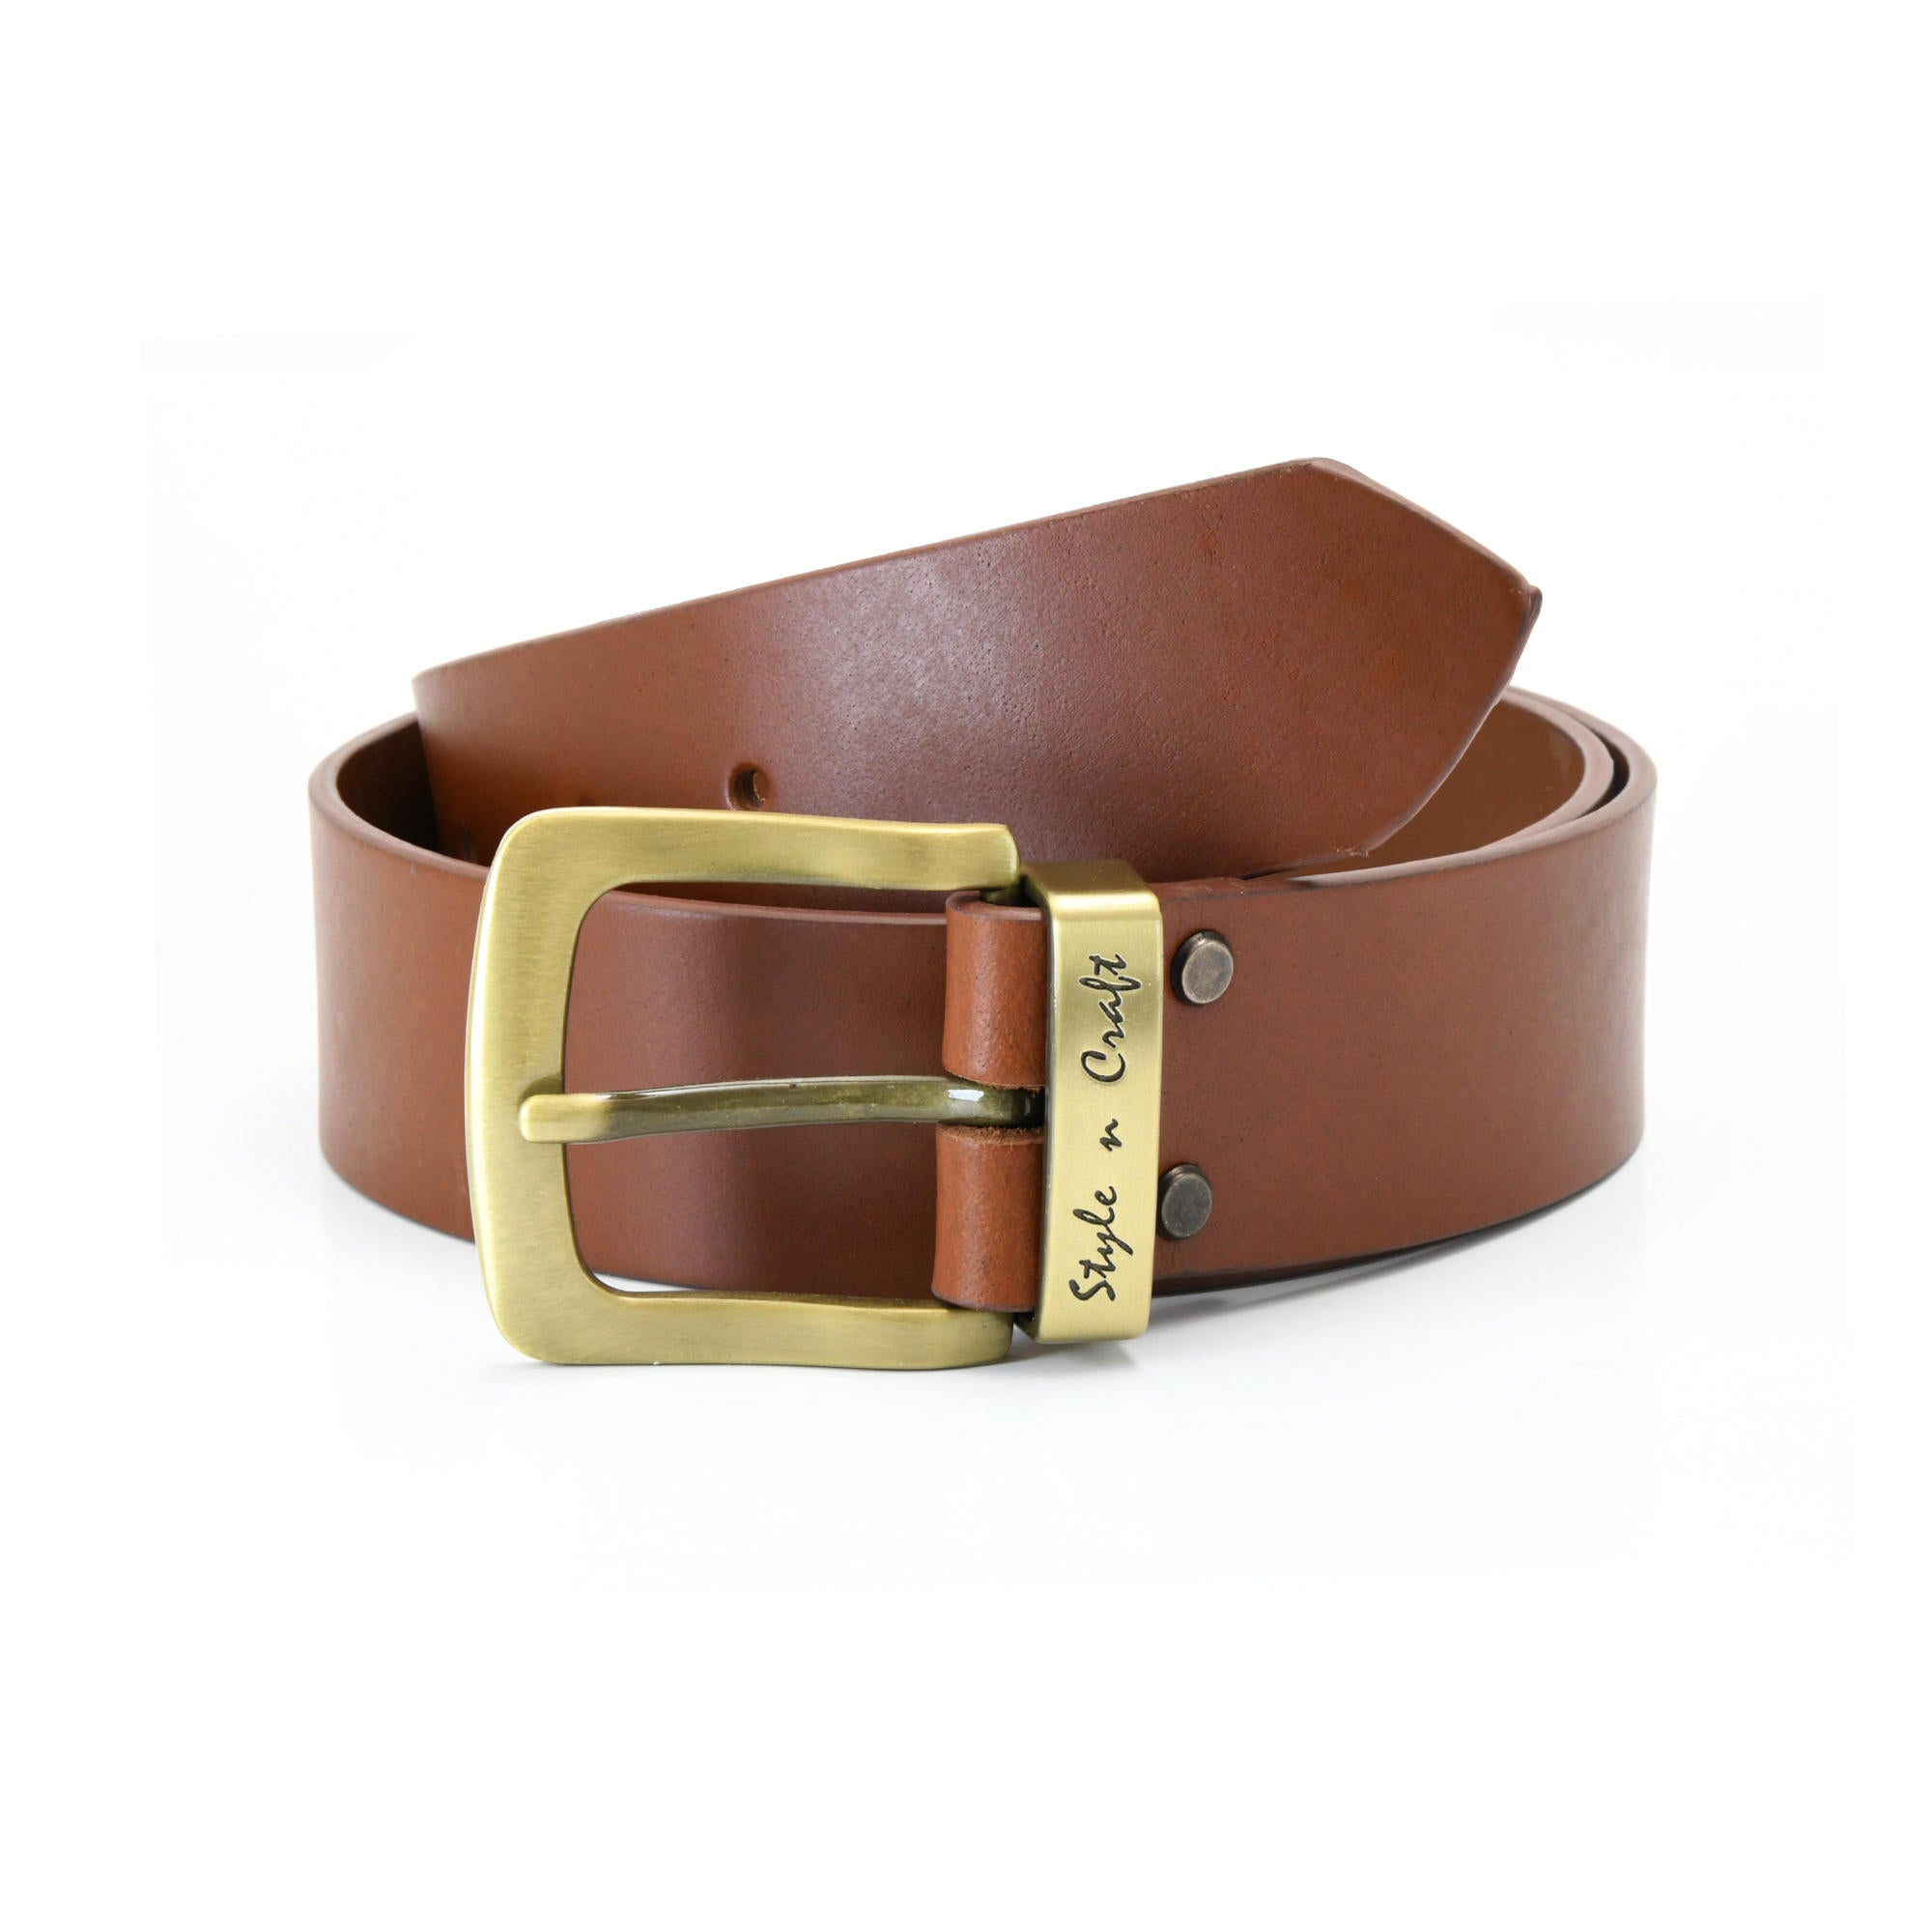 392714 - one and a half inch wide leather belt in tan color full grain leather with matte gold finish metal buckle & loop - front view 1